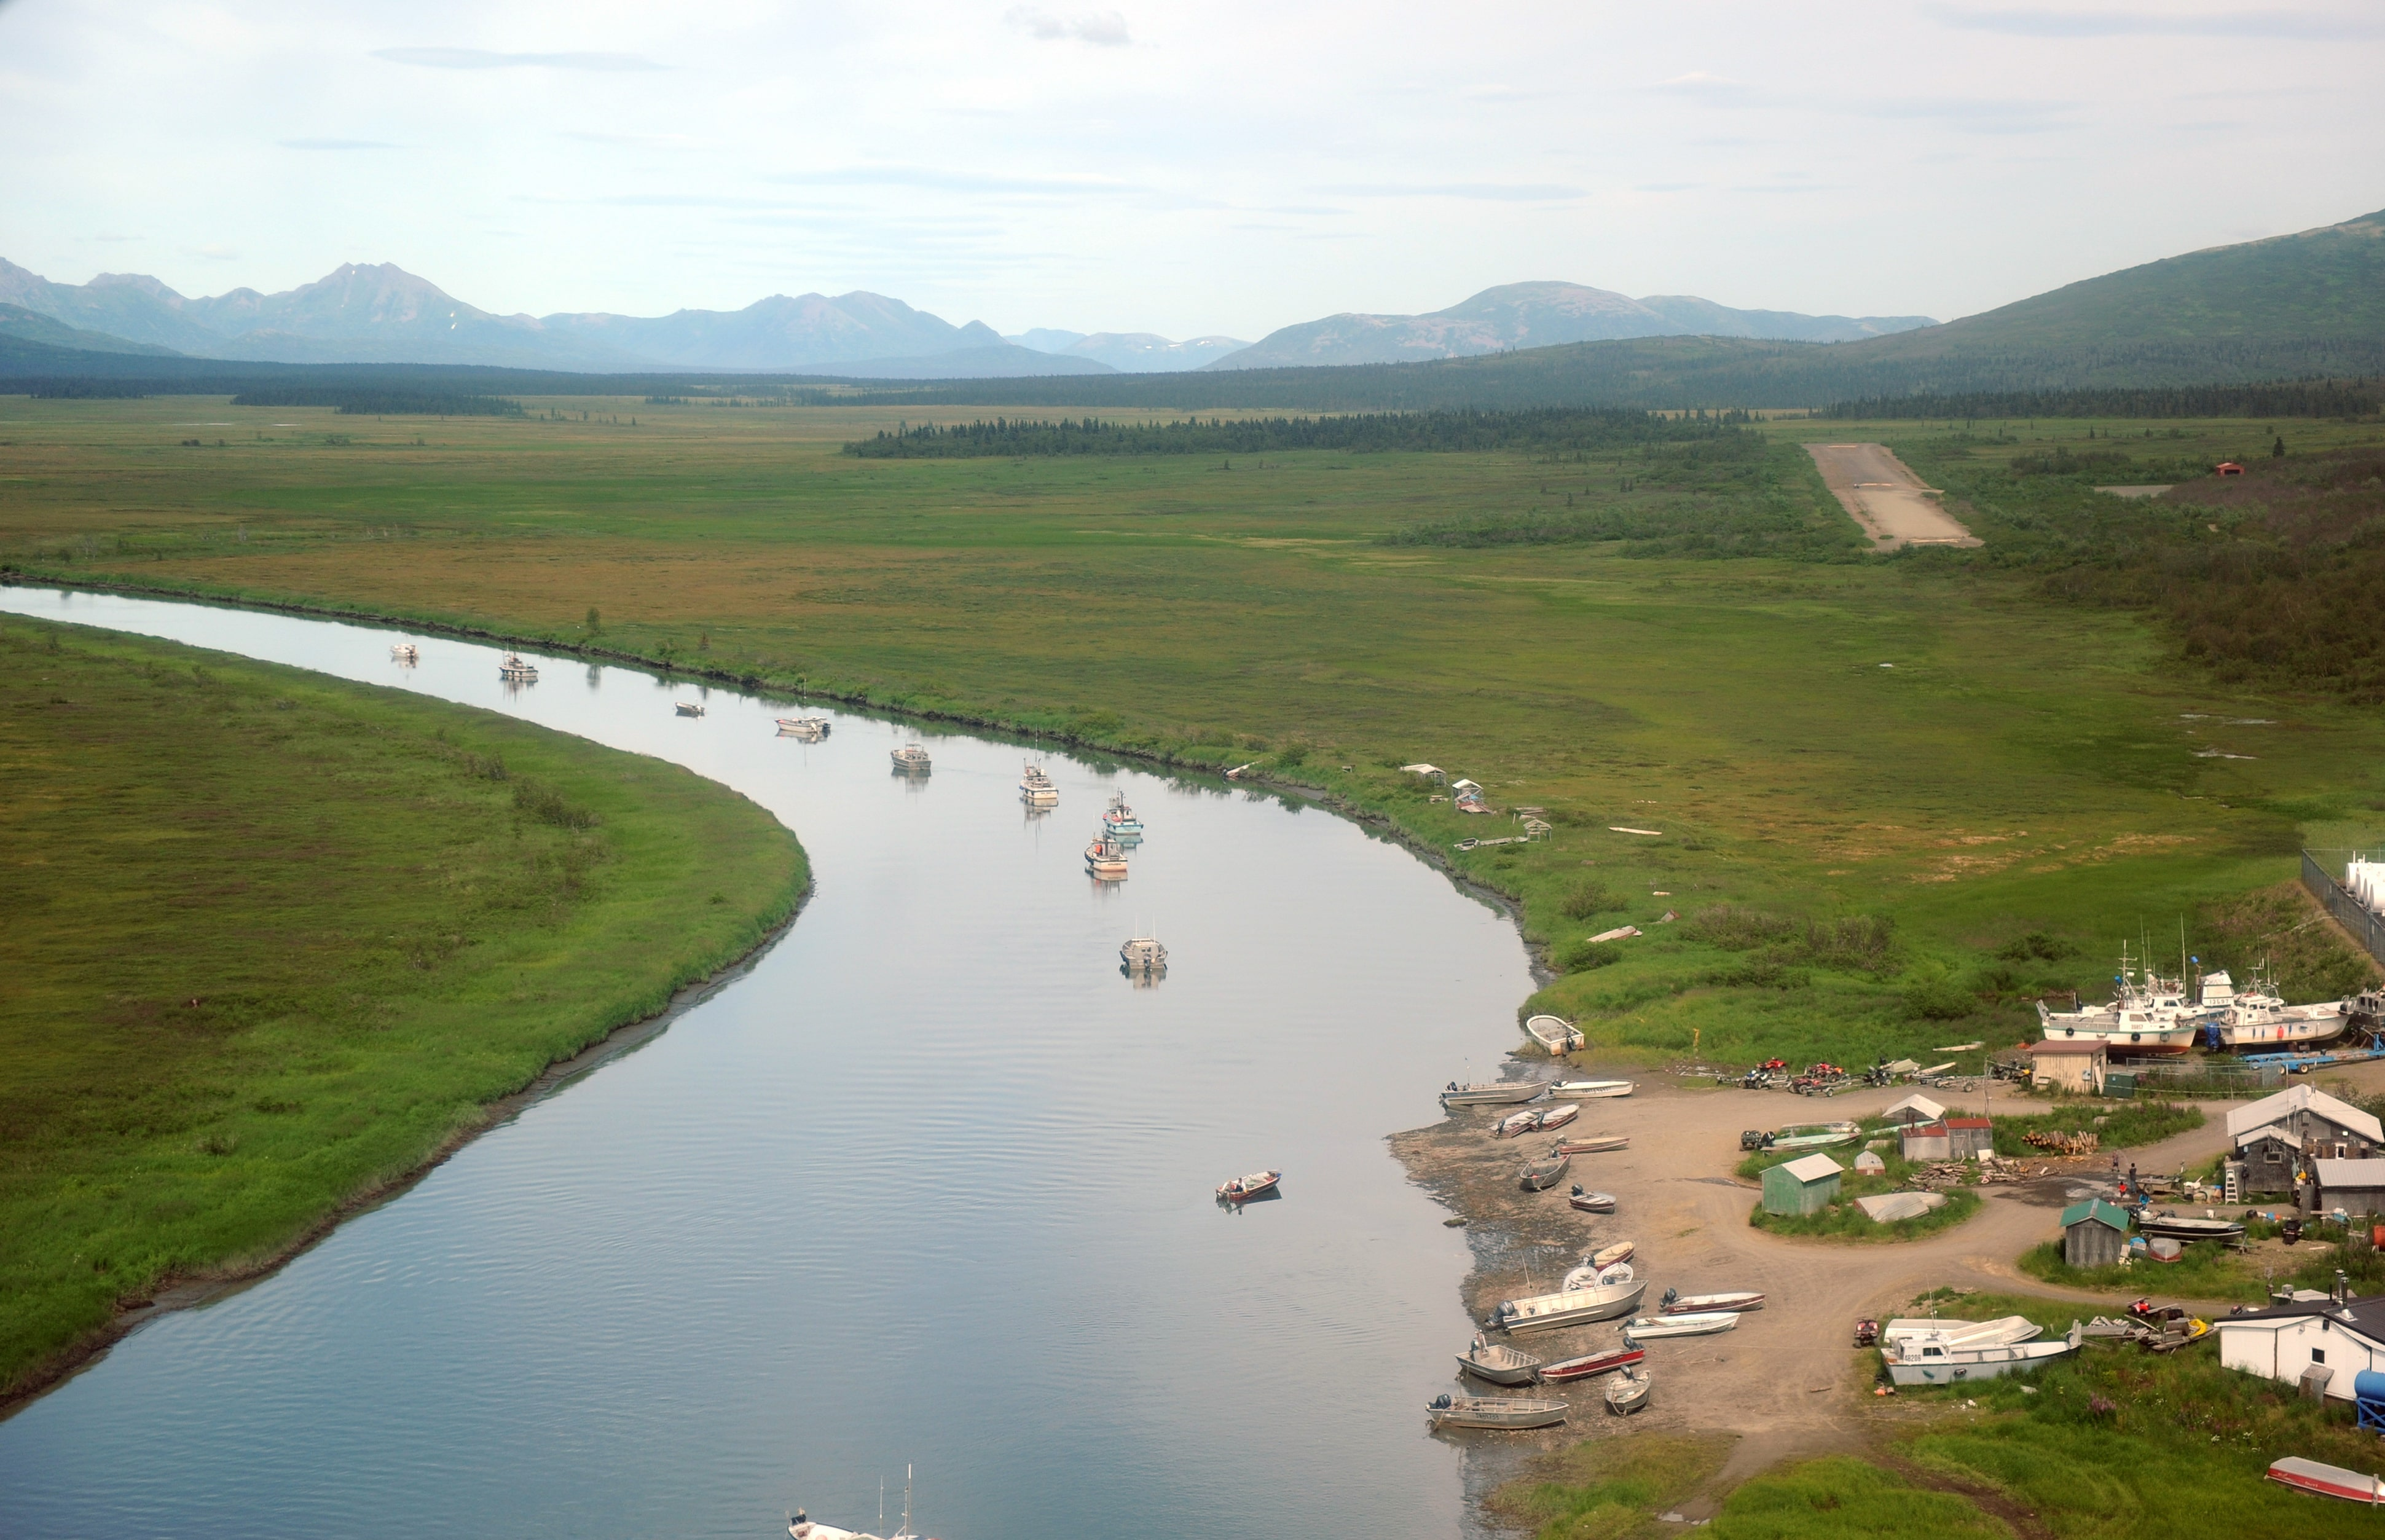 Picture of the Bristol Bay Region - Image Courtesy of the Bristol Bay Native Corporation